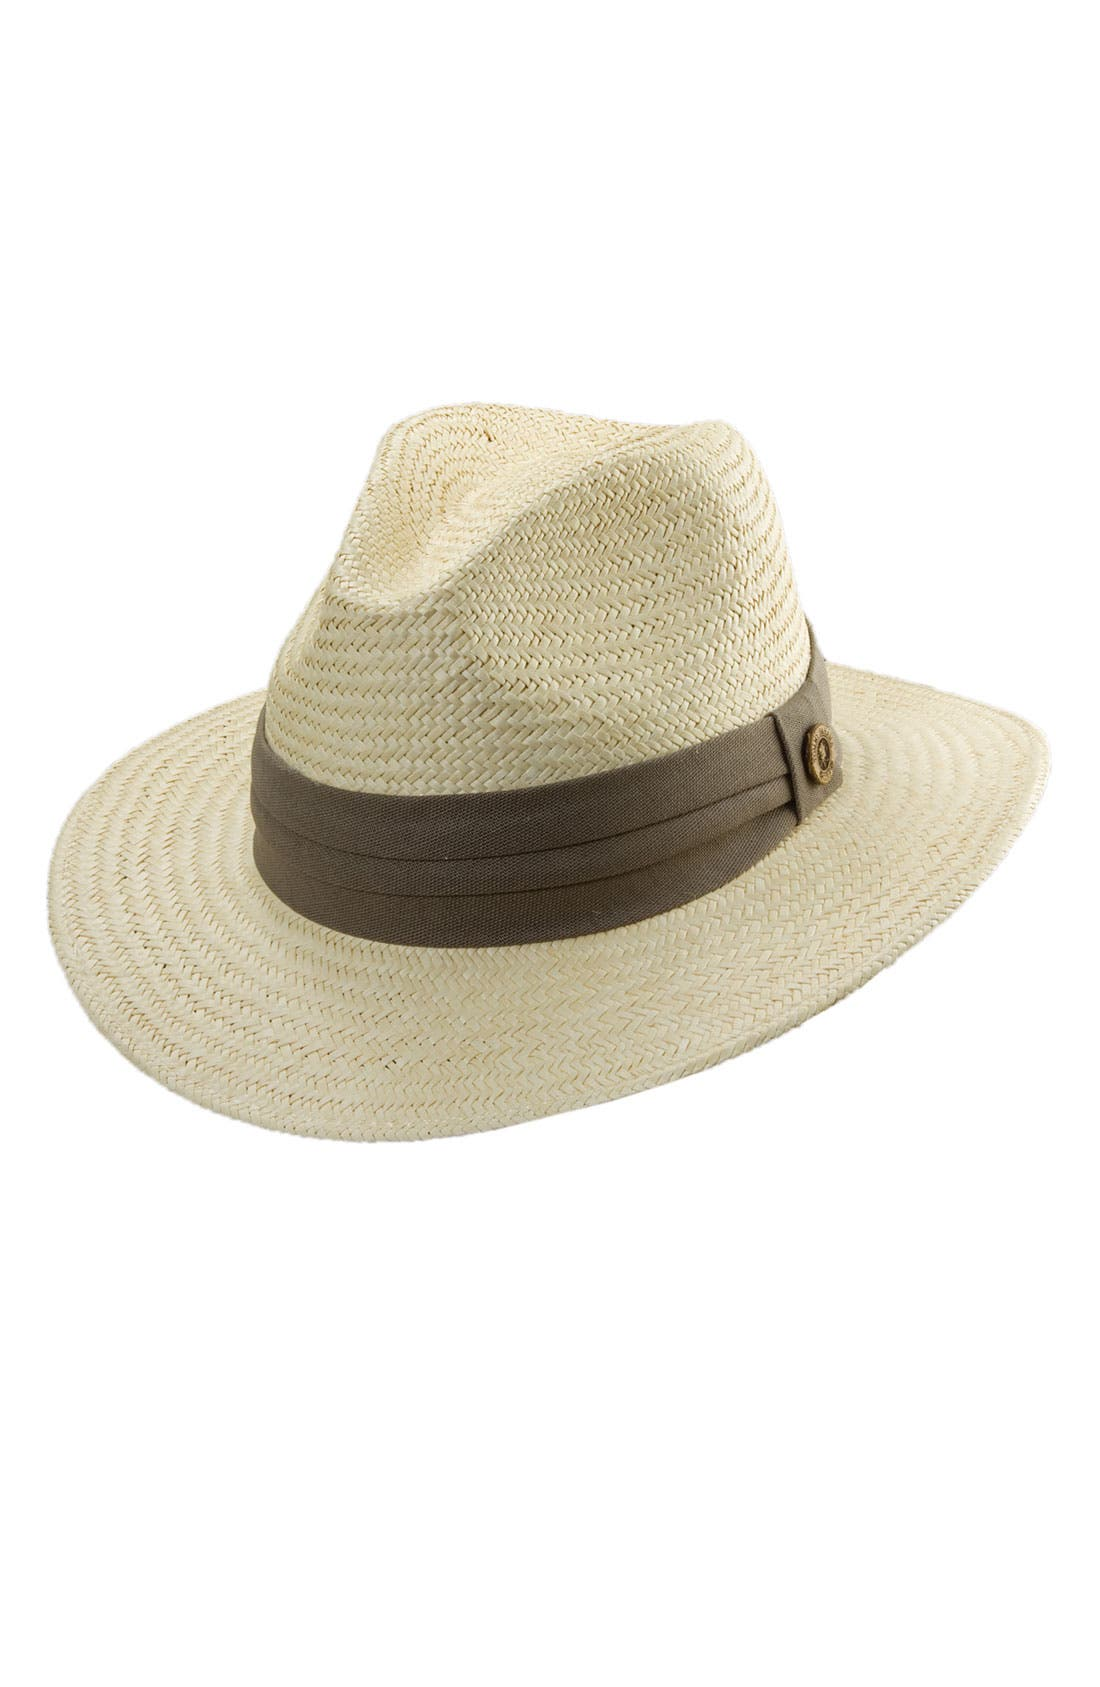 Tommy Bahama 'Golf' Palm Fiber Fedora